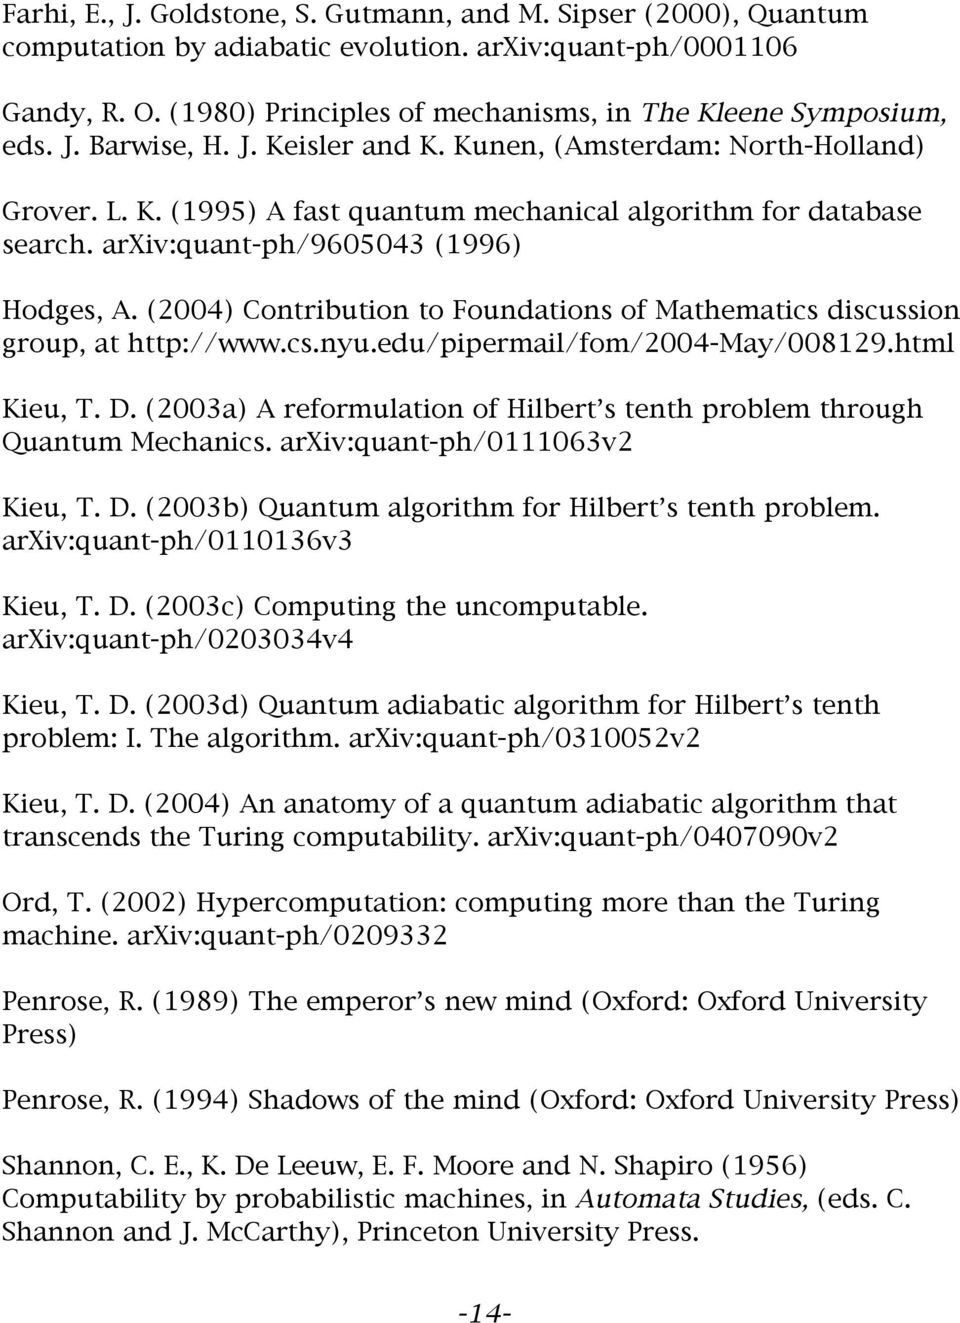 arxiv:quant-ph/9605043 (1996) Hodges, A. (2004) Contribution to Foundations of Mathematics discussion group, at http://www.cs.nyu.edu/pipermail/fom/2004-may/008129.html Kieu, T. D.